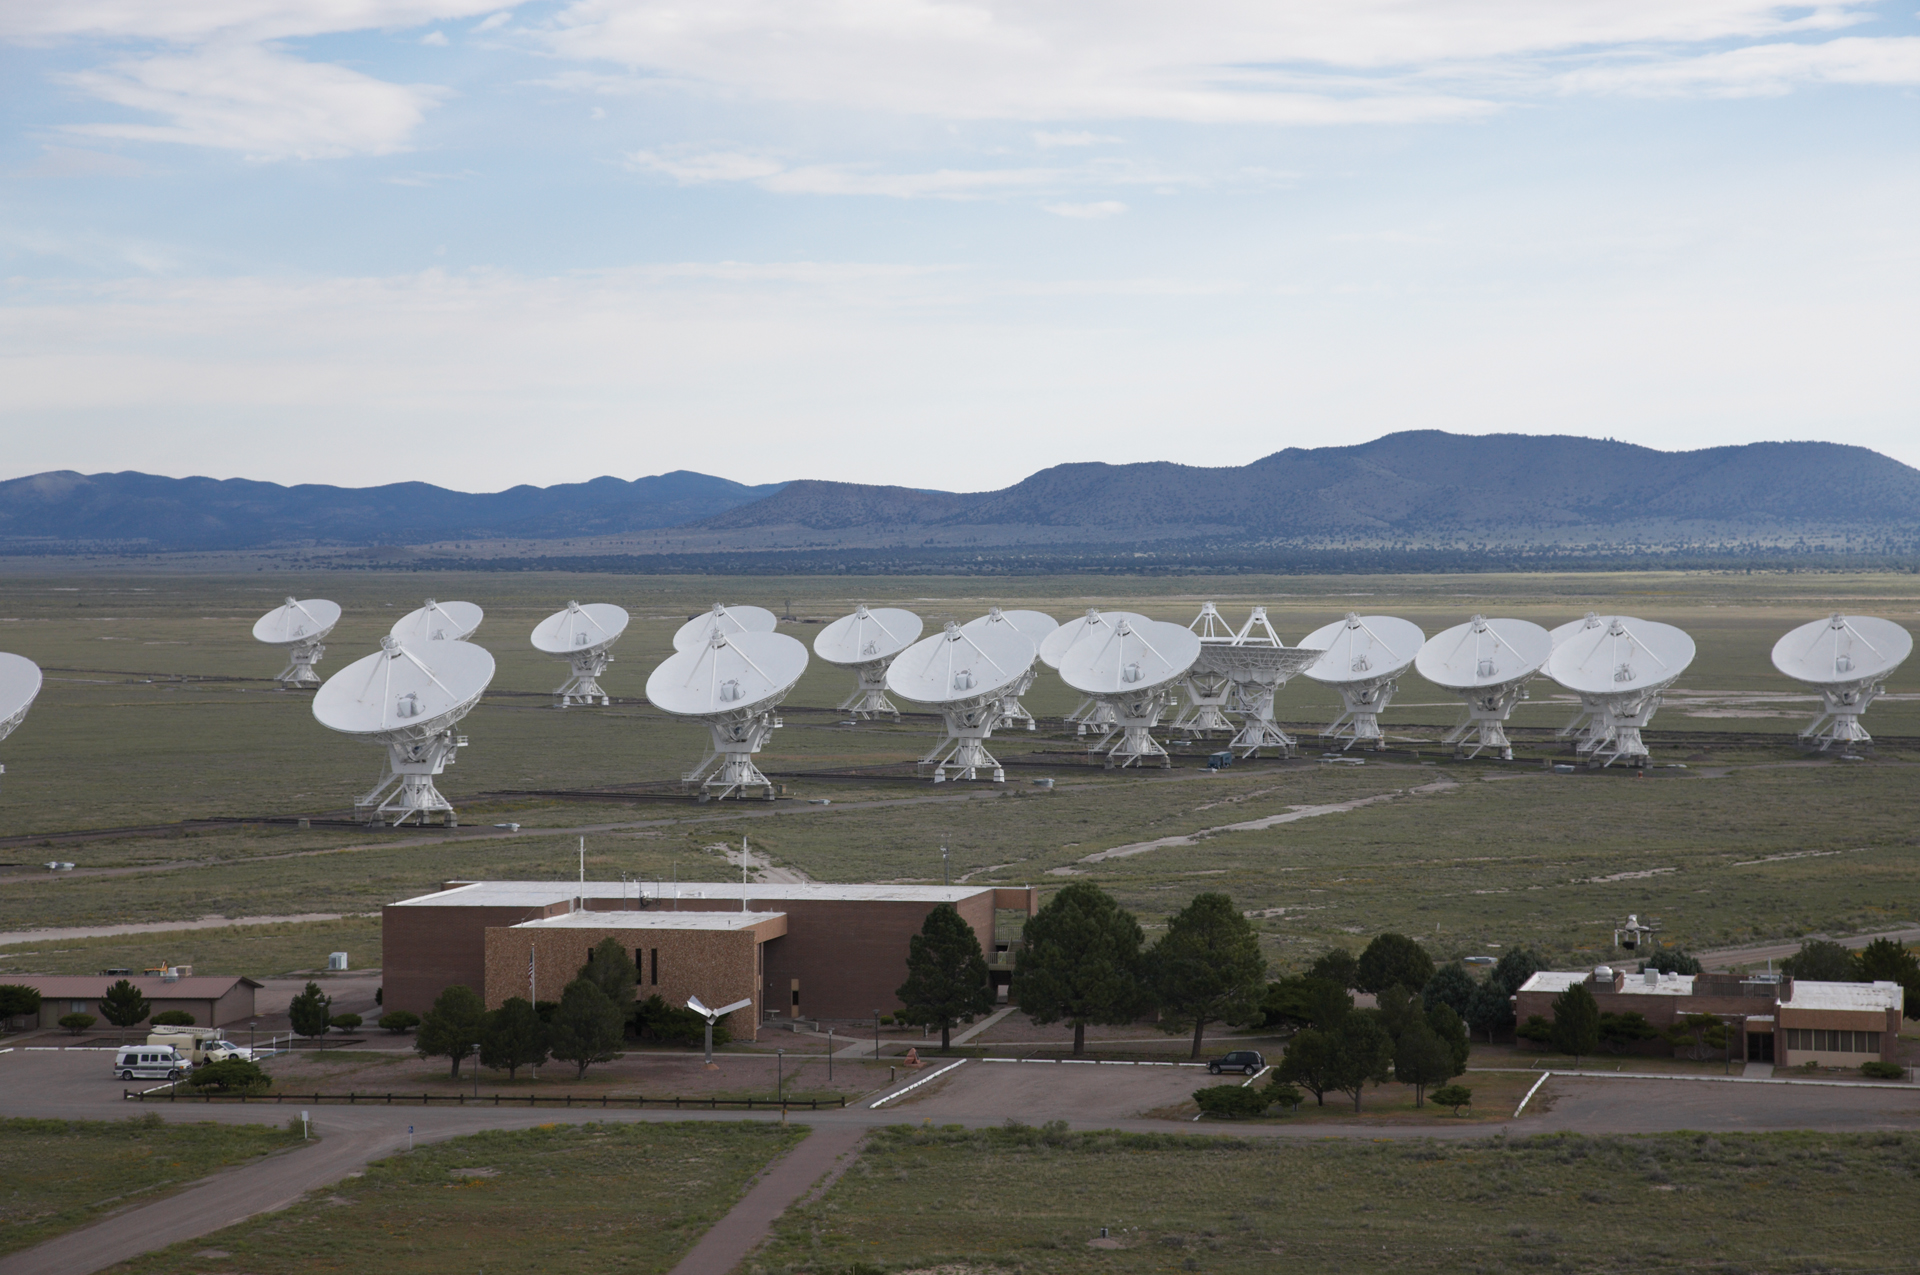 VLA antennas and the Control Building